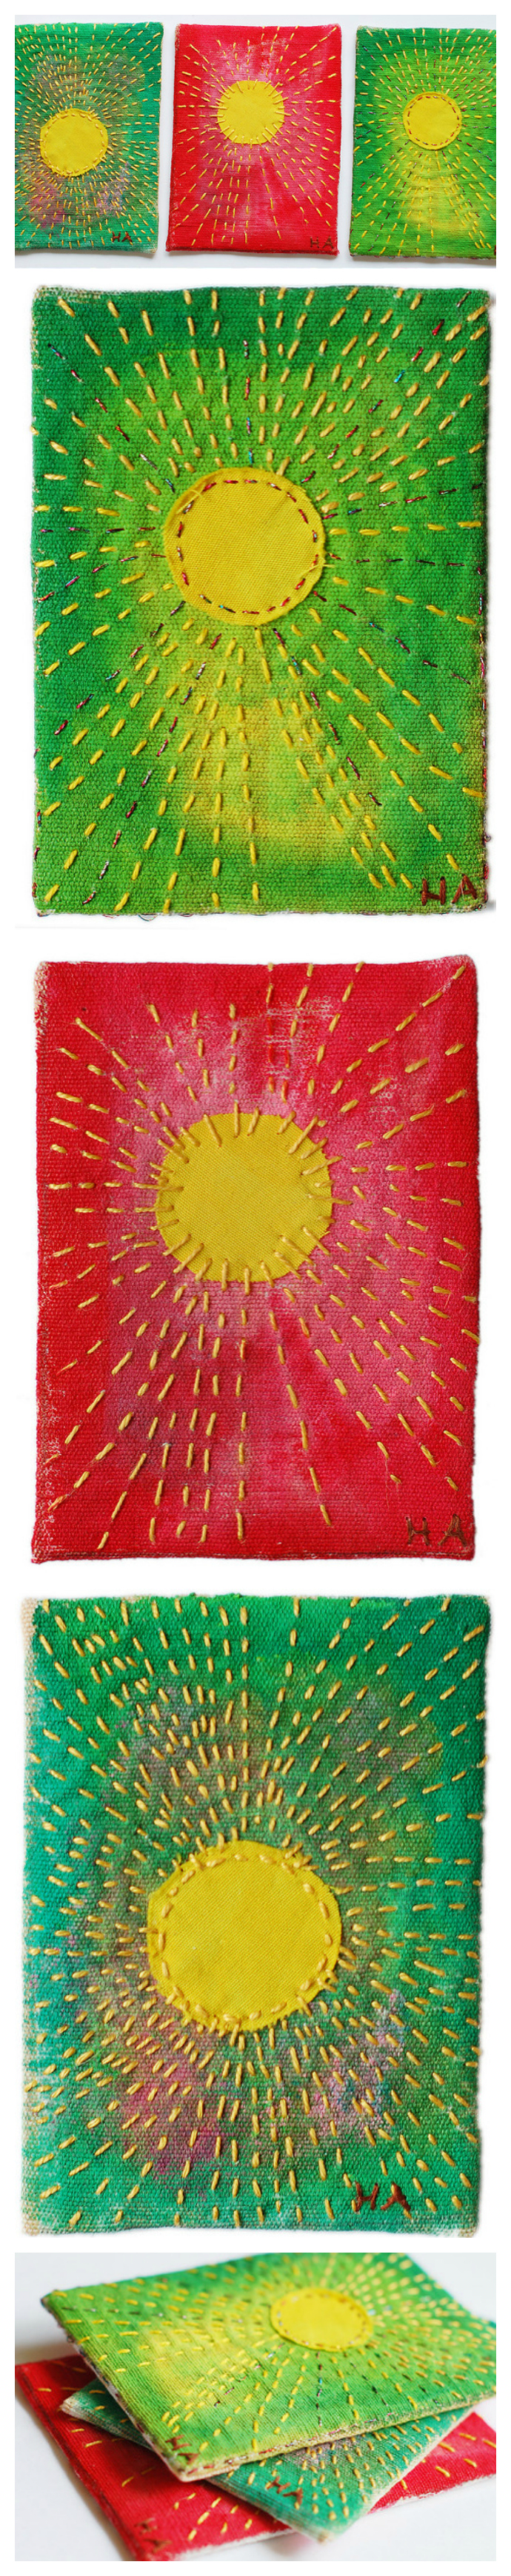 Sunshine ATCs embroidered by @ihanna (artist trading card) #embroidery #broderi